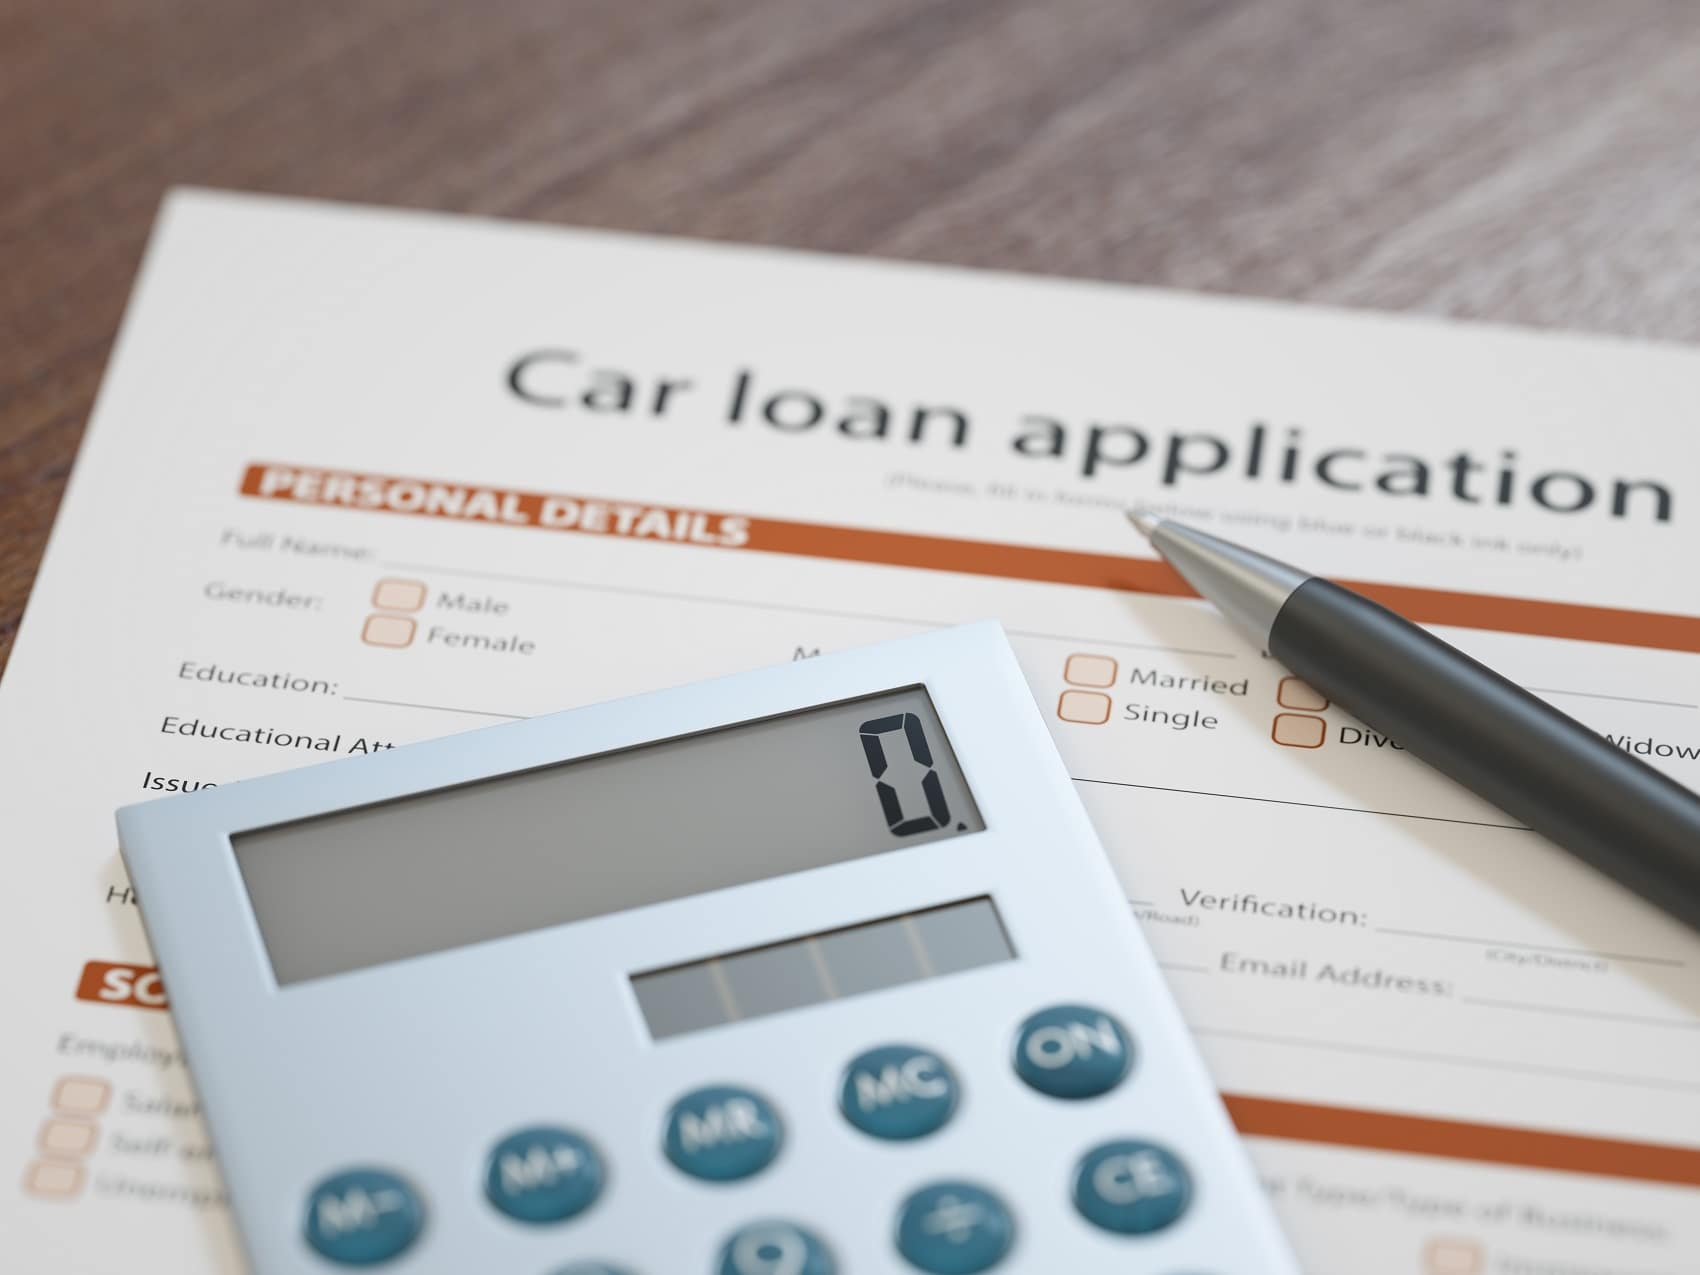 Applying for a car loan close up of calculator and car loan application